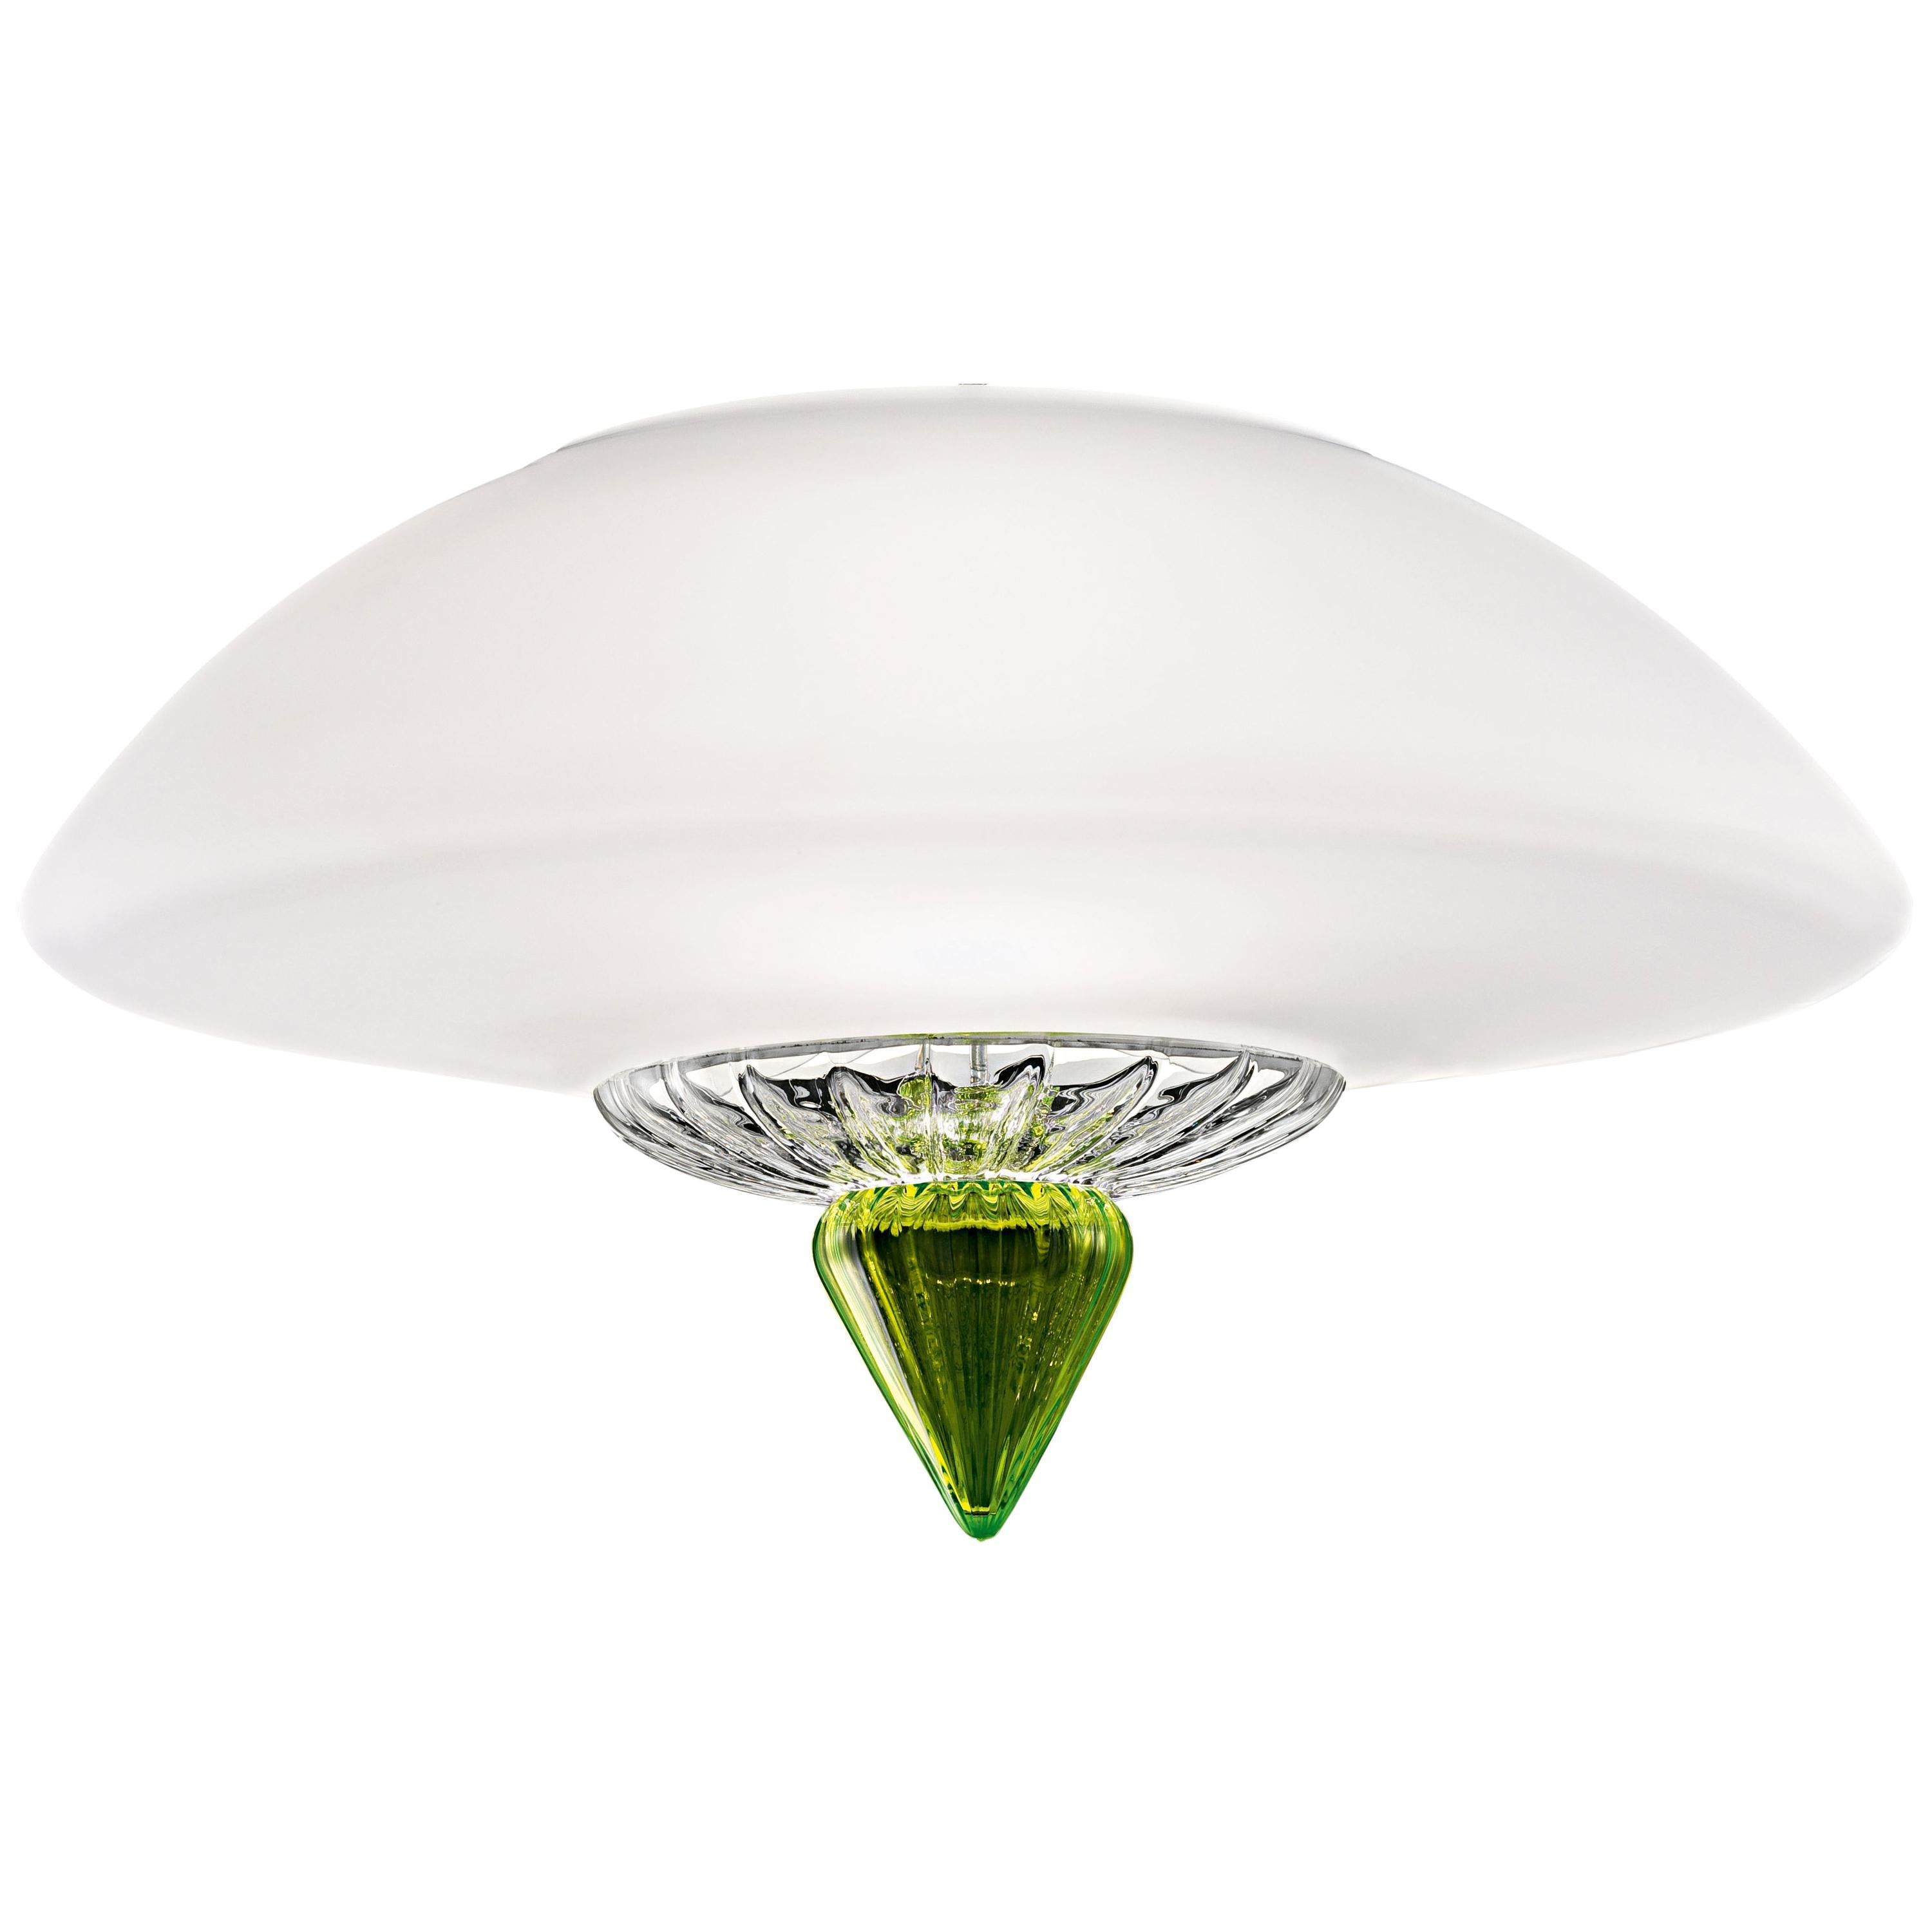 Topkapi 7094 60 Ceiling Lamp in Glass, by Daniela Puppa from Barovier&Toso